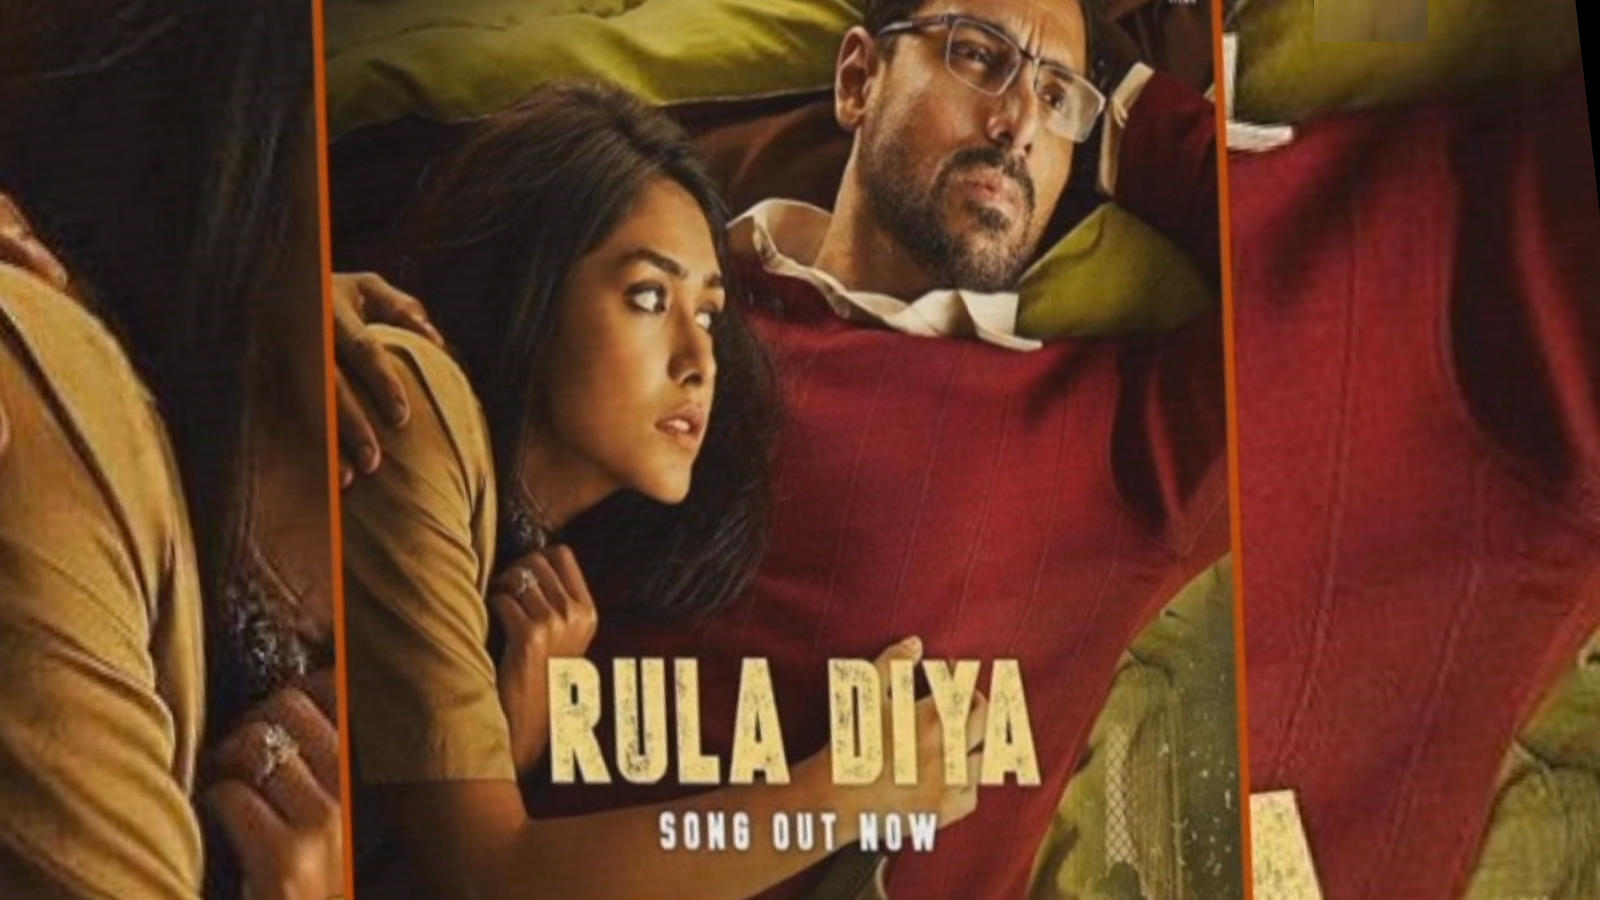 'Rula Diya' song from 'Batla House' is here to tug at your heartstrings